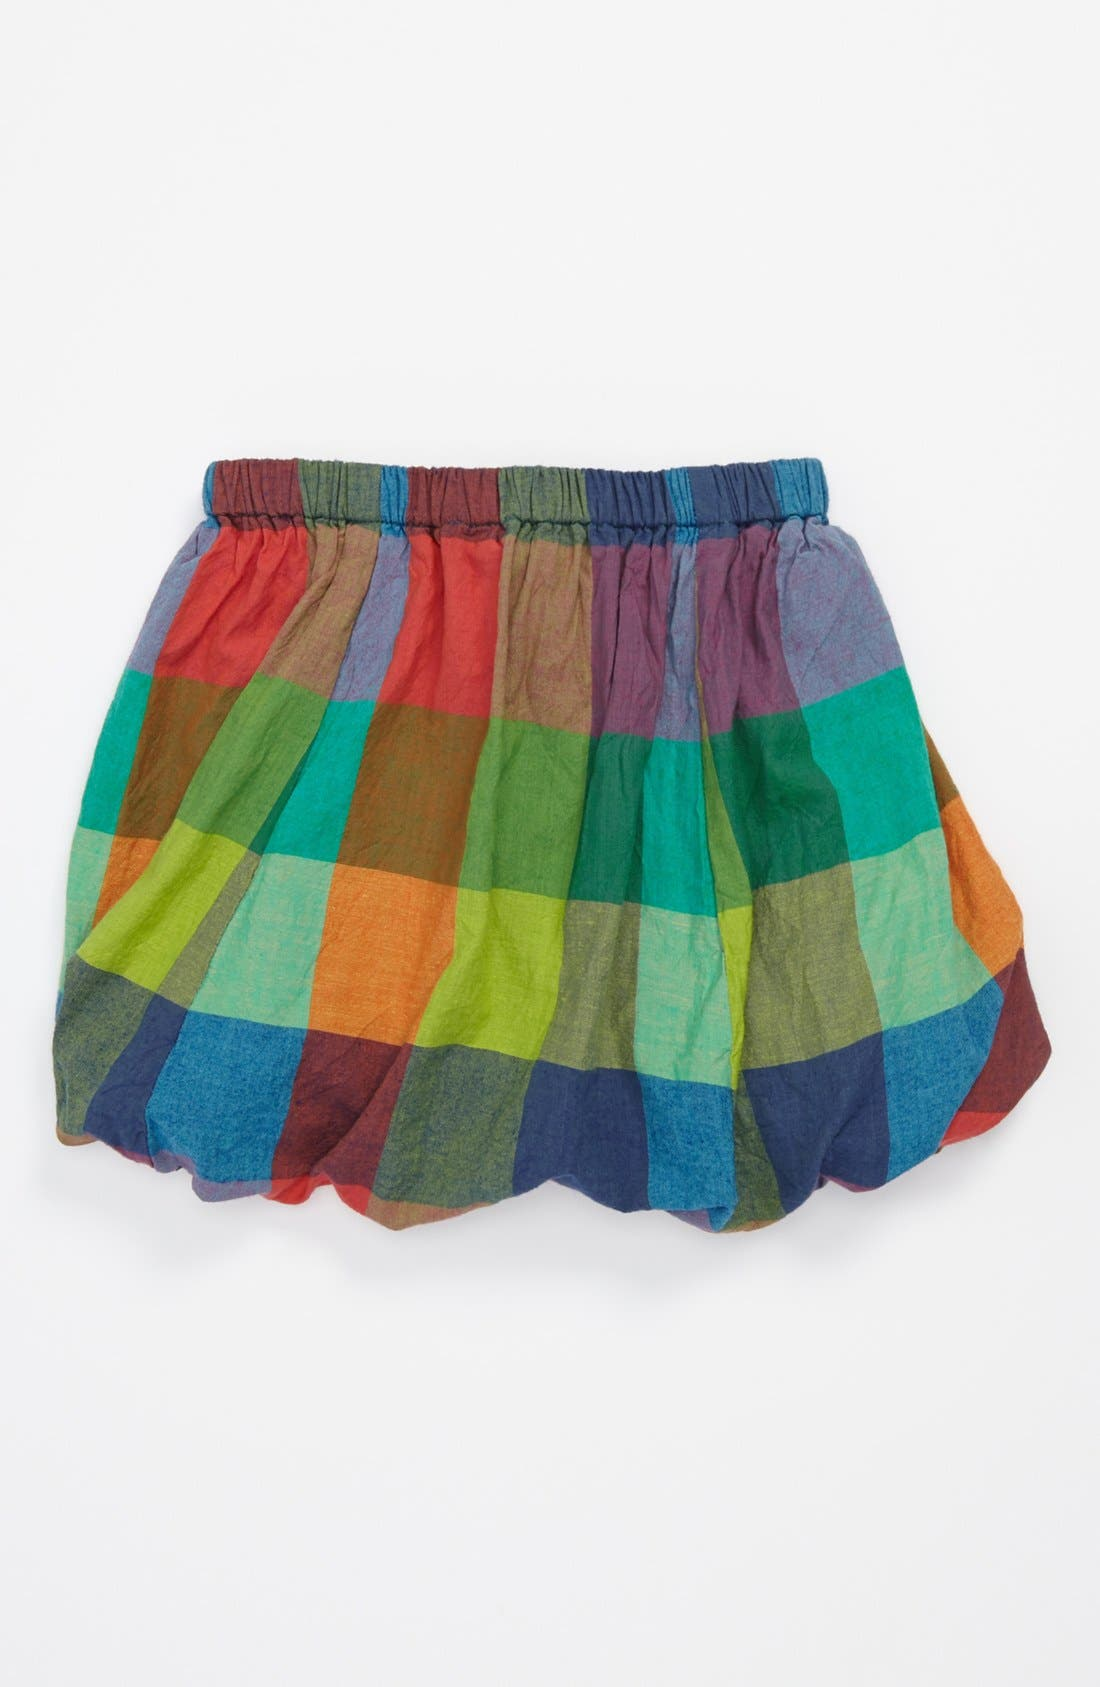 Main Image - Peek 'Sadie' Skirt (Toddler Girls, Little Girls & Big Girls)